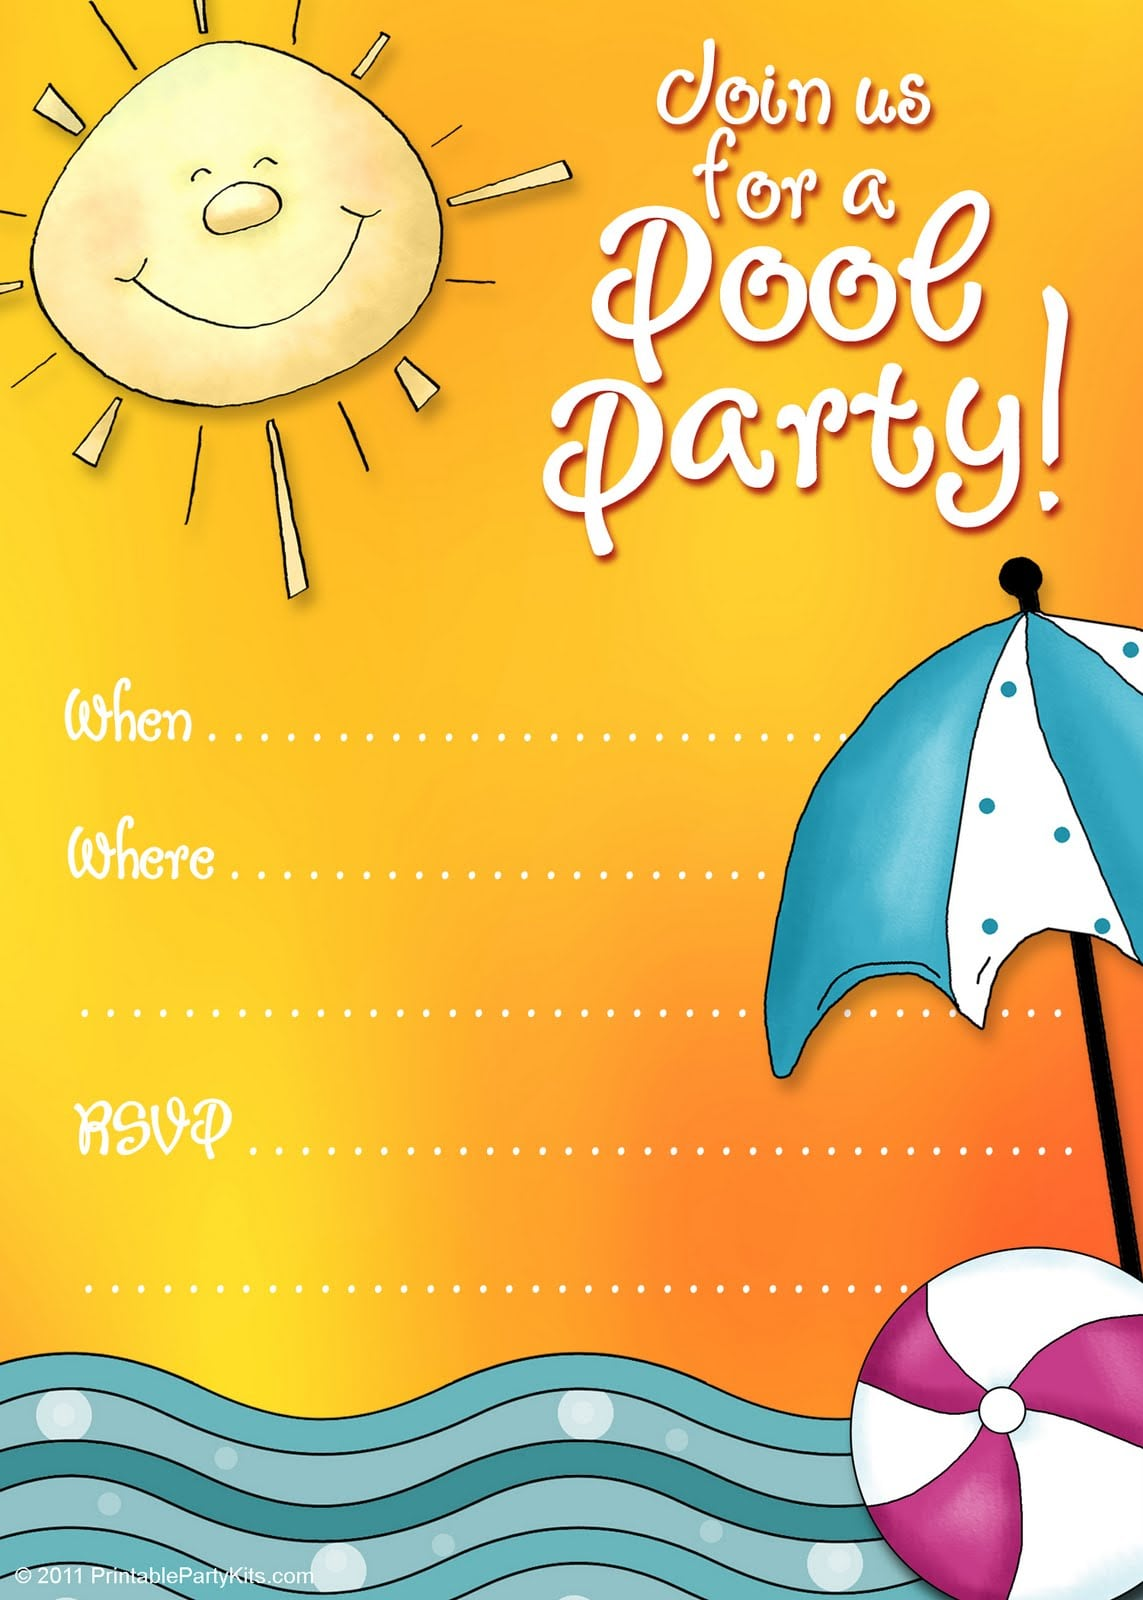 It is an image of Printable Pool Party Invitations in 4th july